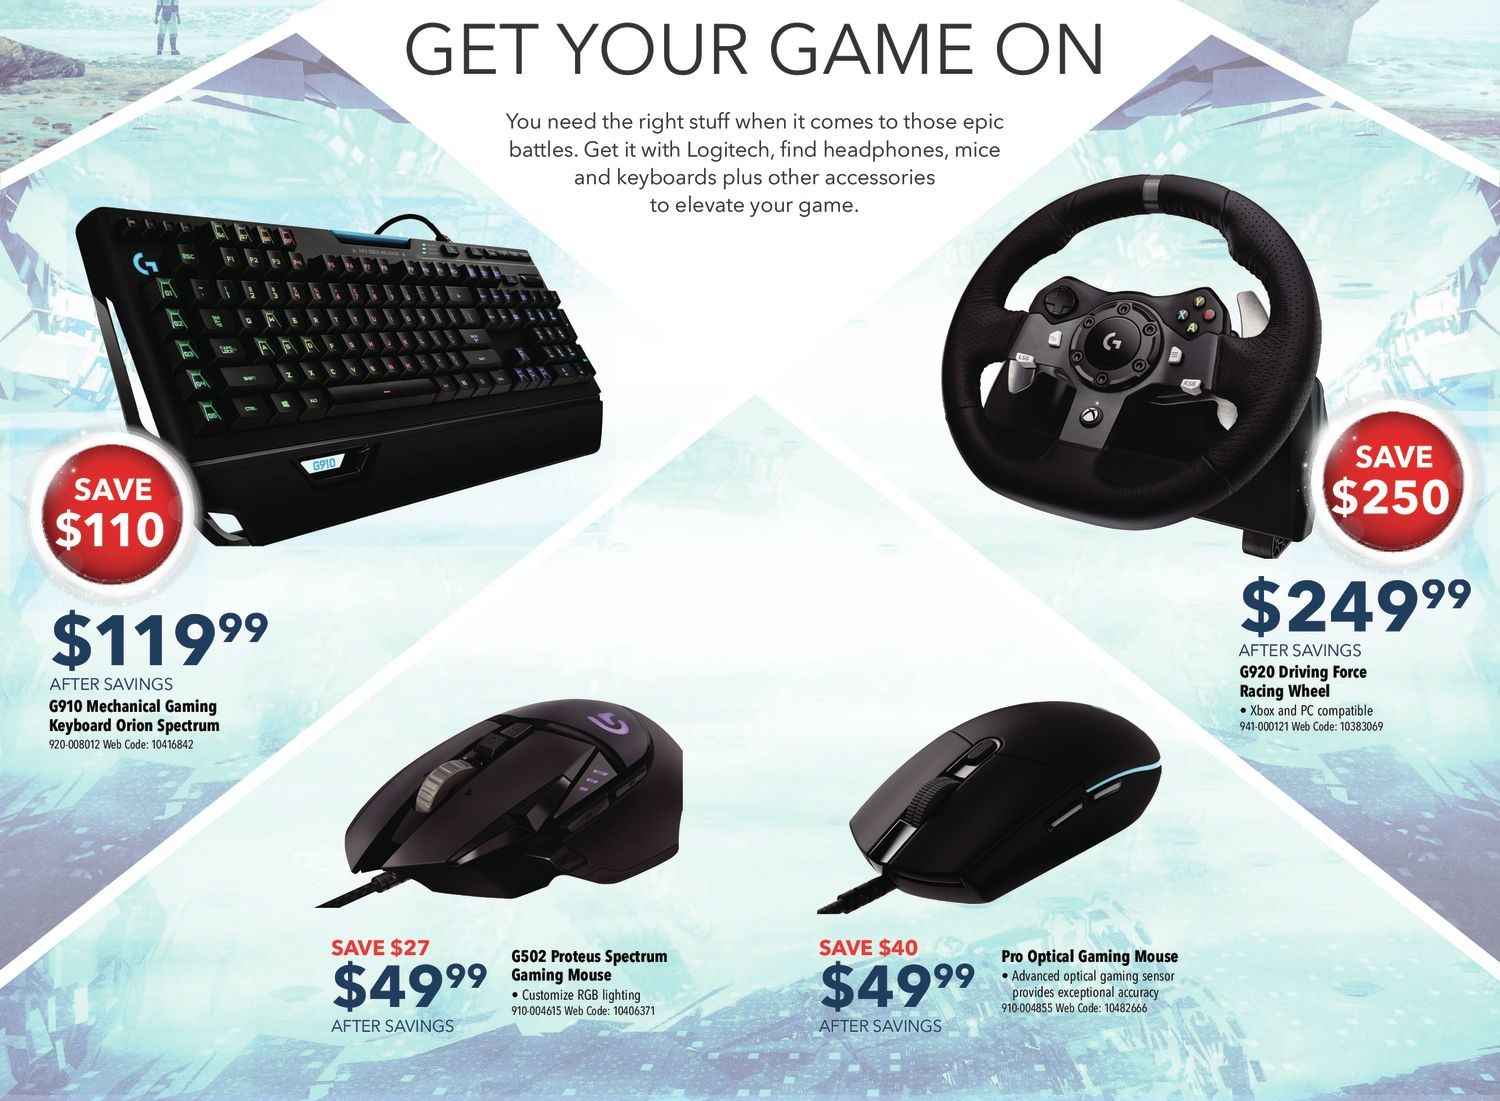 05edf5ace4e Best Buy Weekly Flyer - Boxing Day Sale - Dec 25 – Jan 3 - RedFlagDeals.com